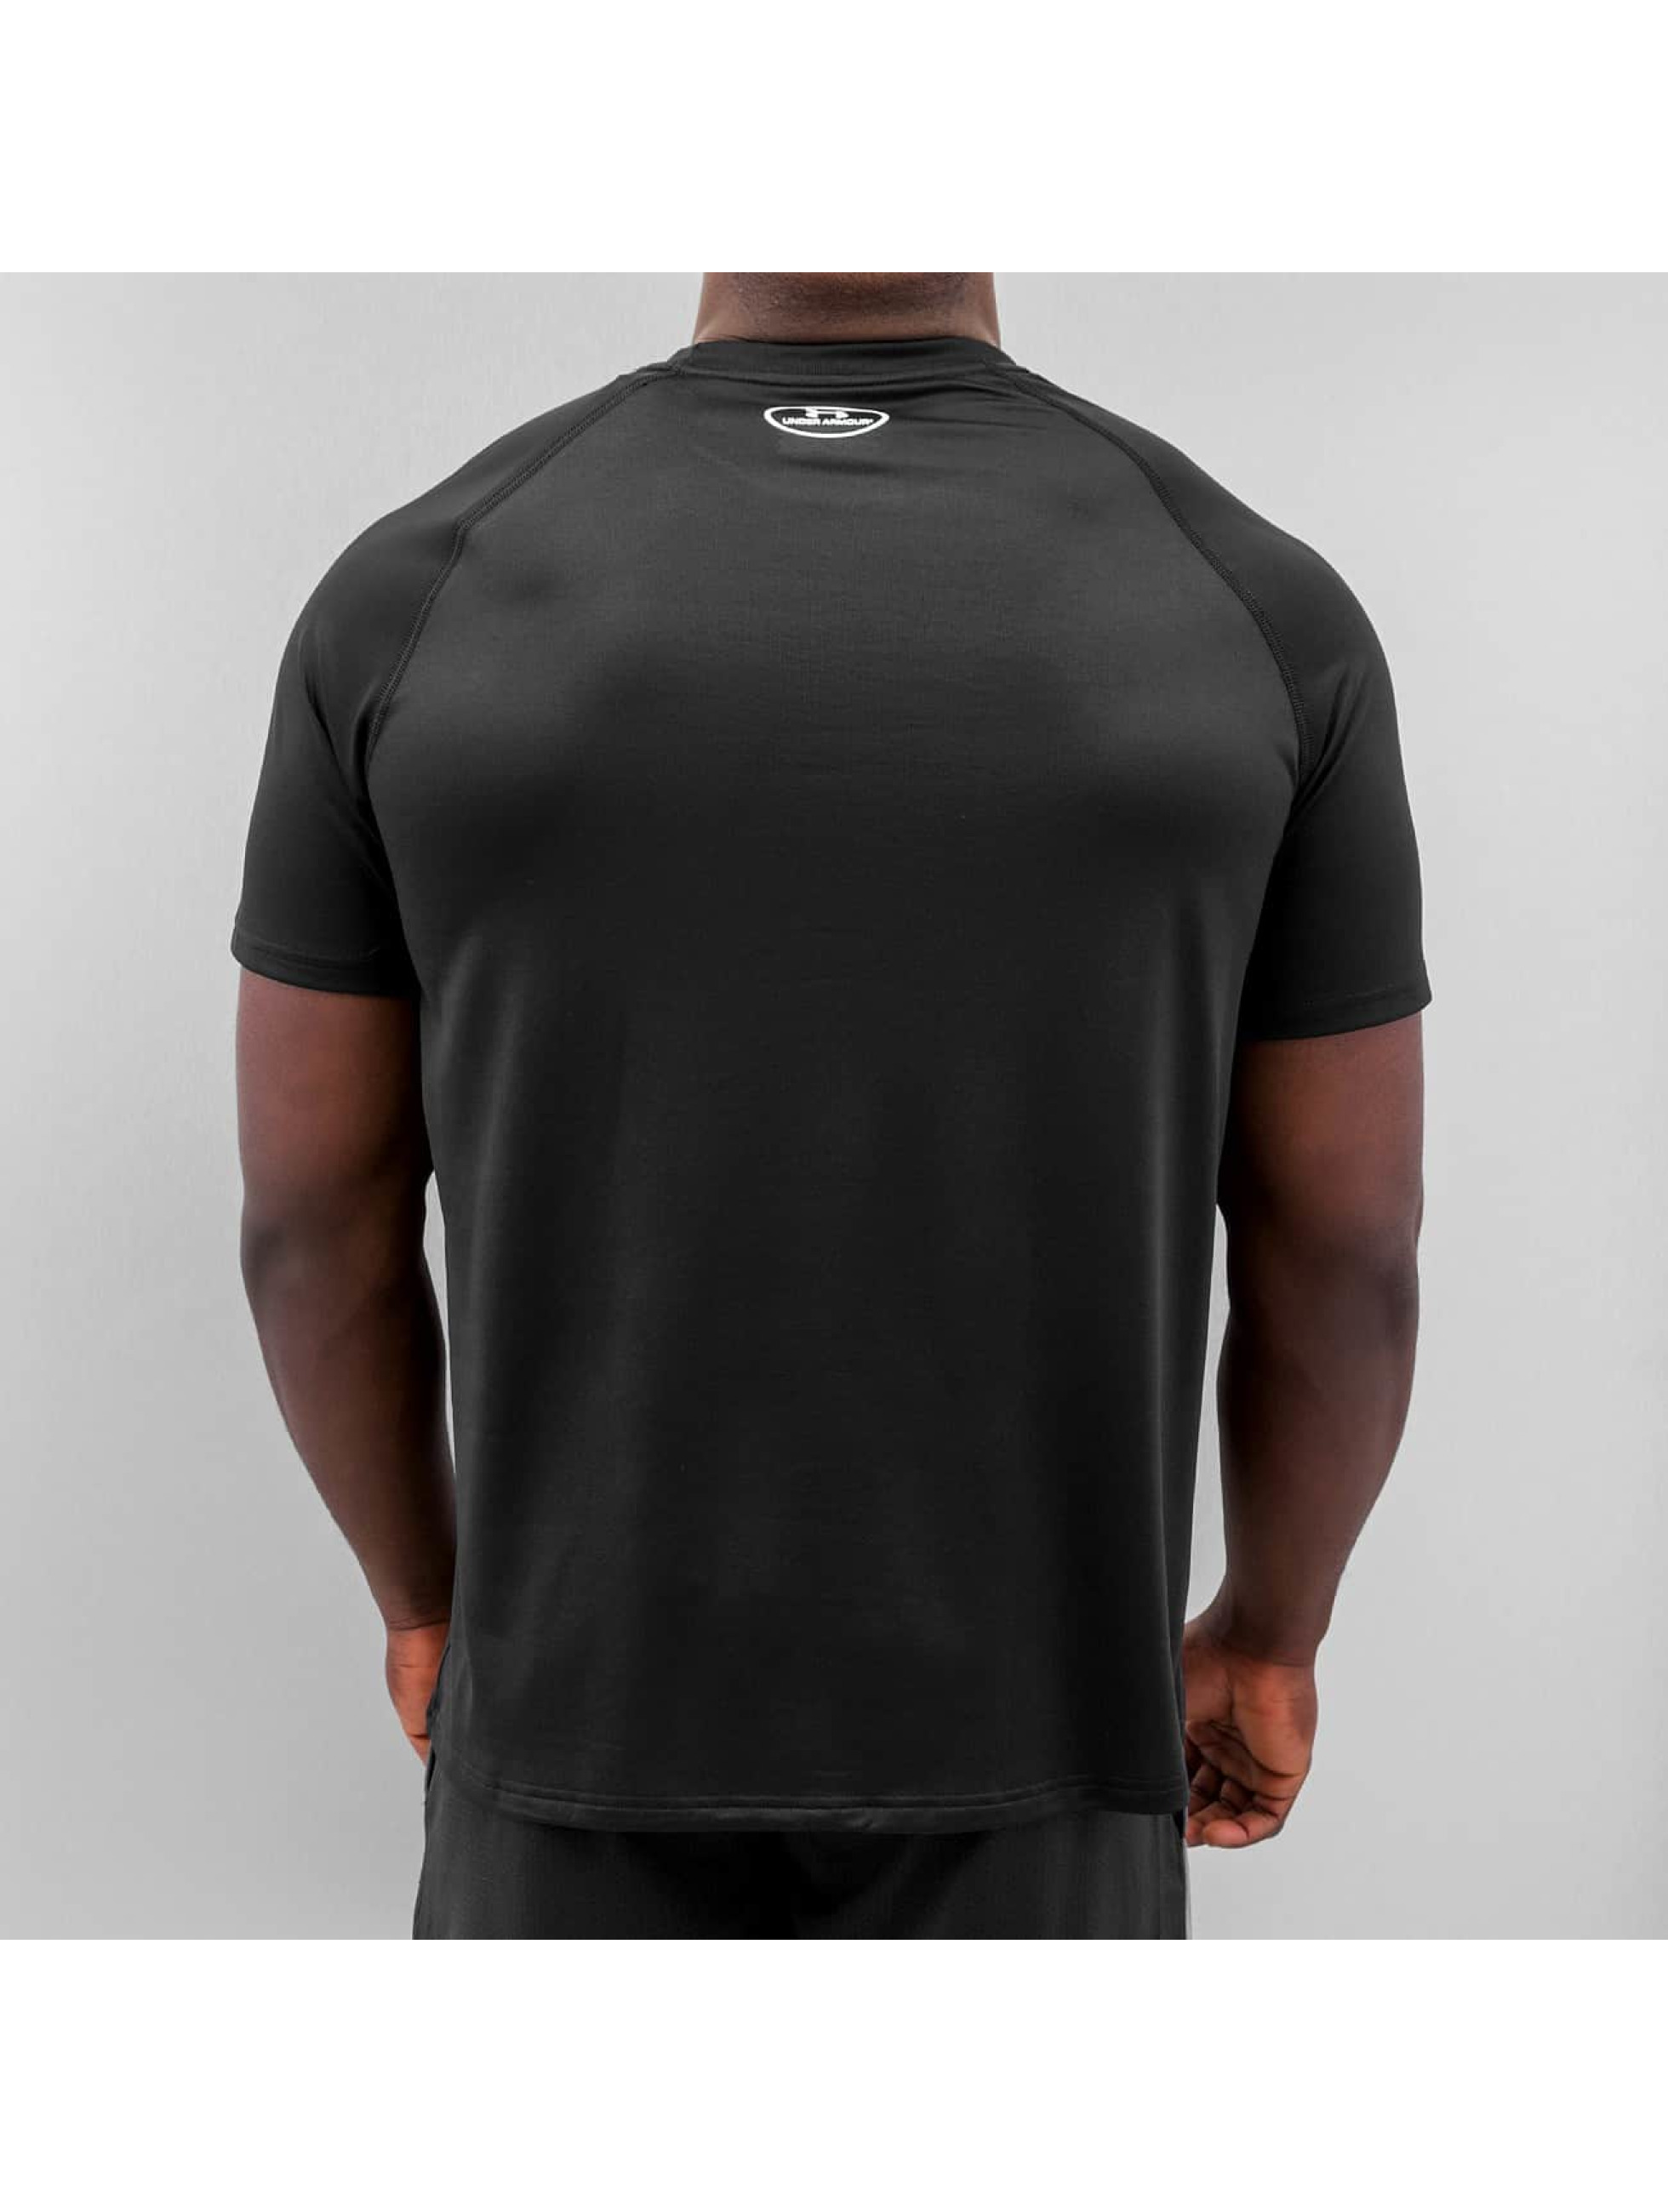 Under Armour T-Shirt Tech schwarz